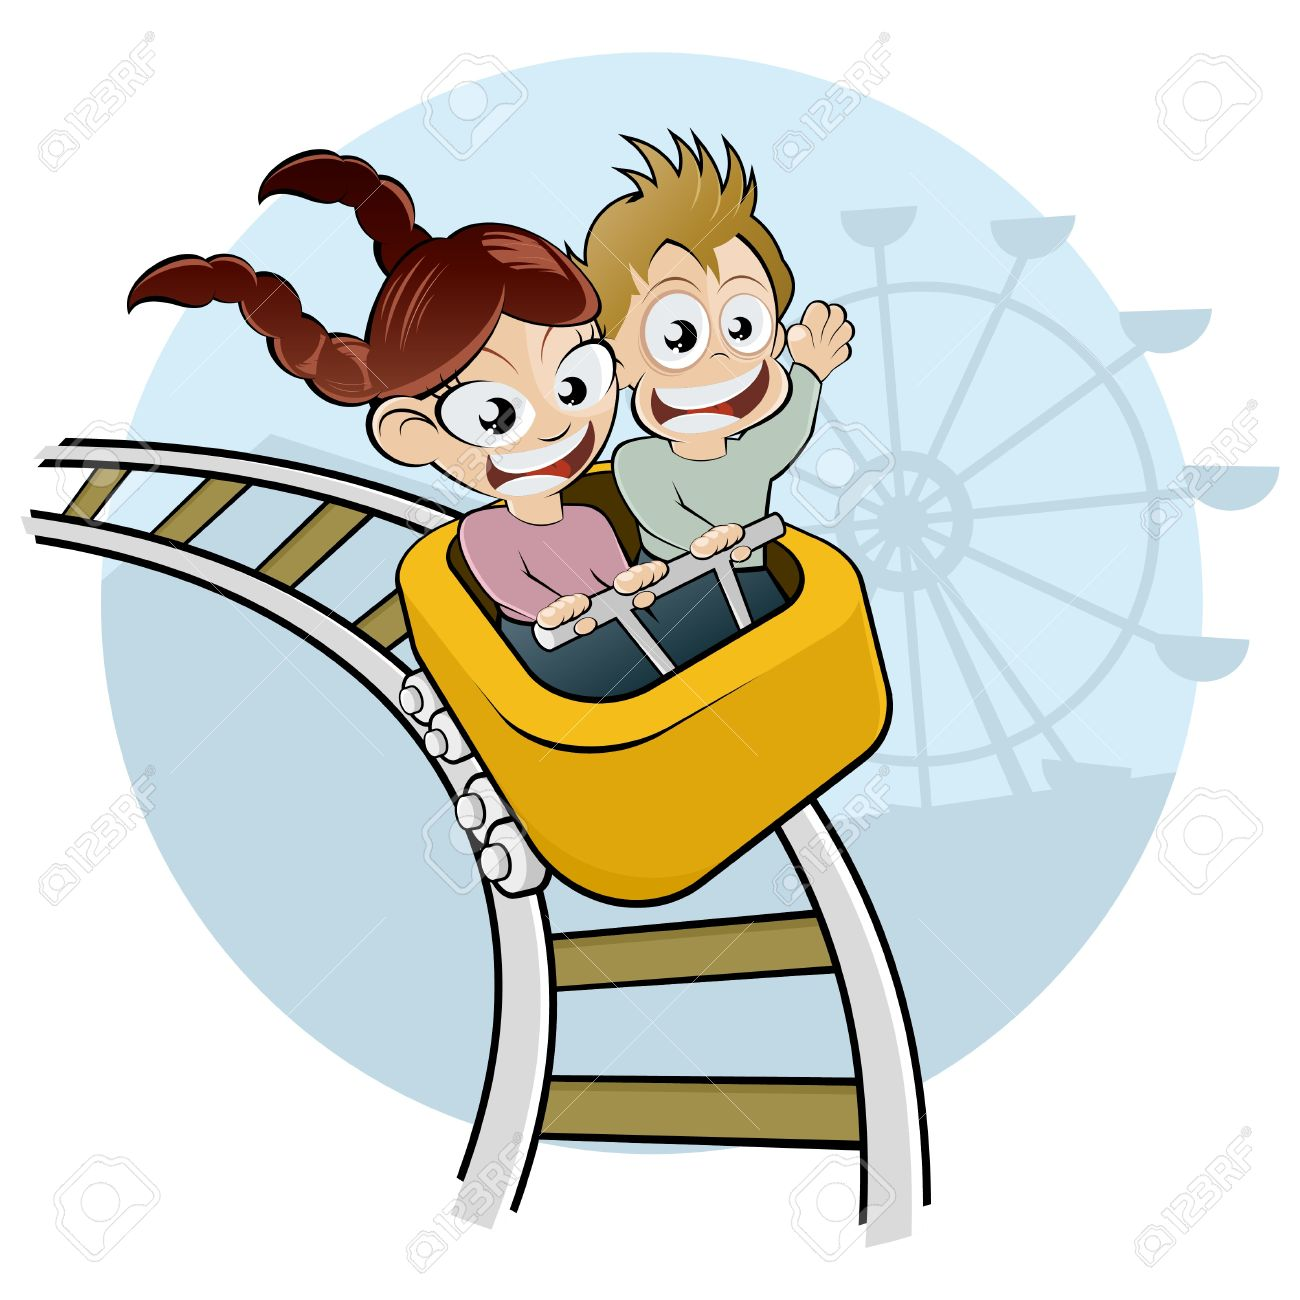 1300x1300 Cartoon Kids On Rollercoaster Royalty Free Cliparts, Vectors,